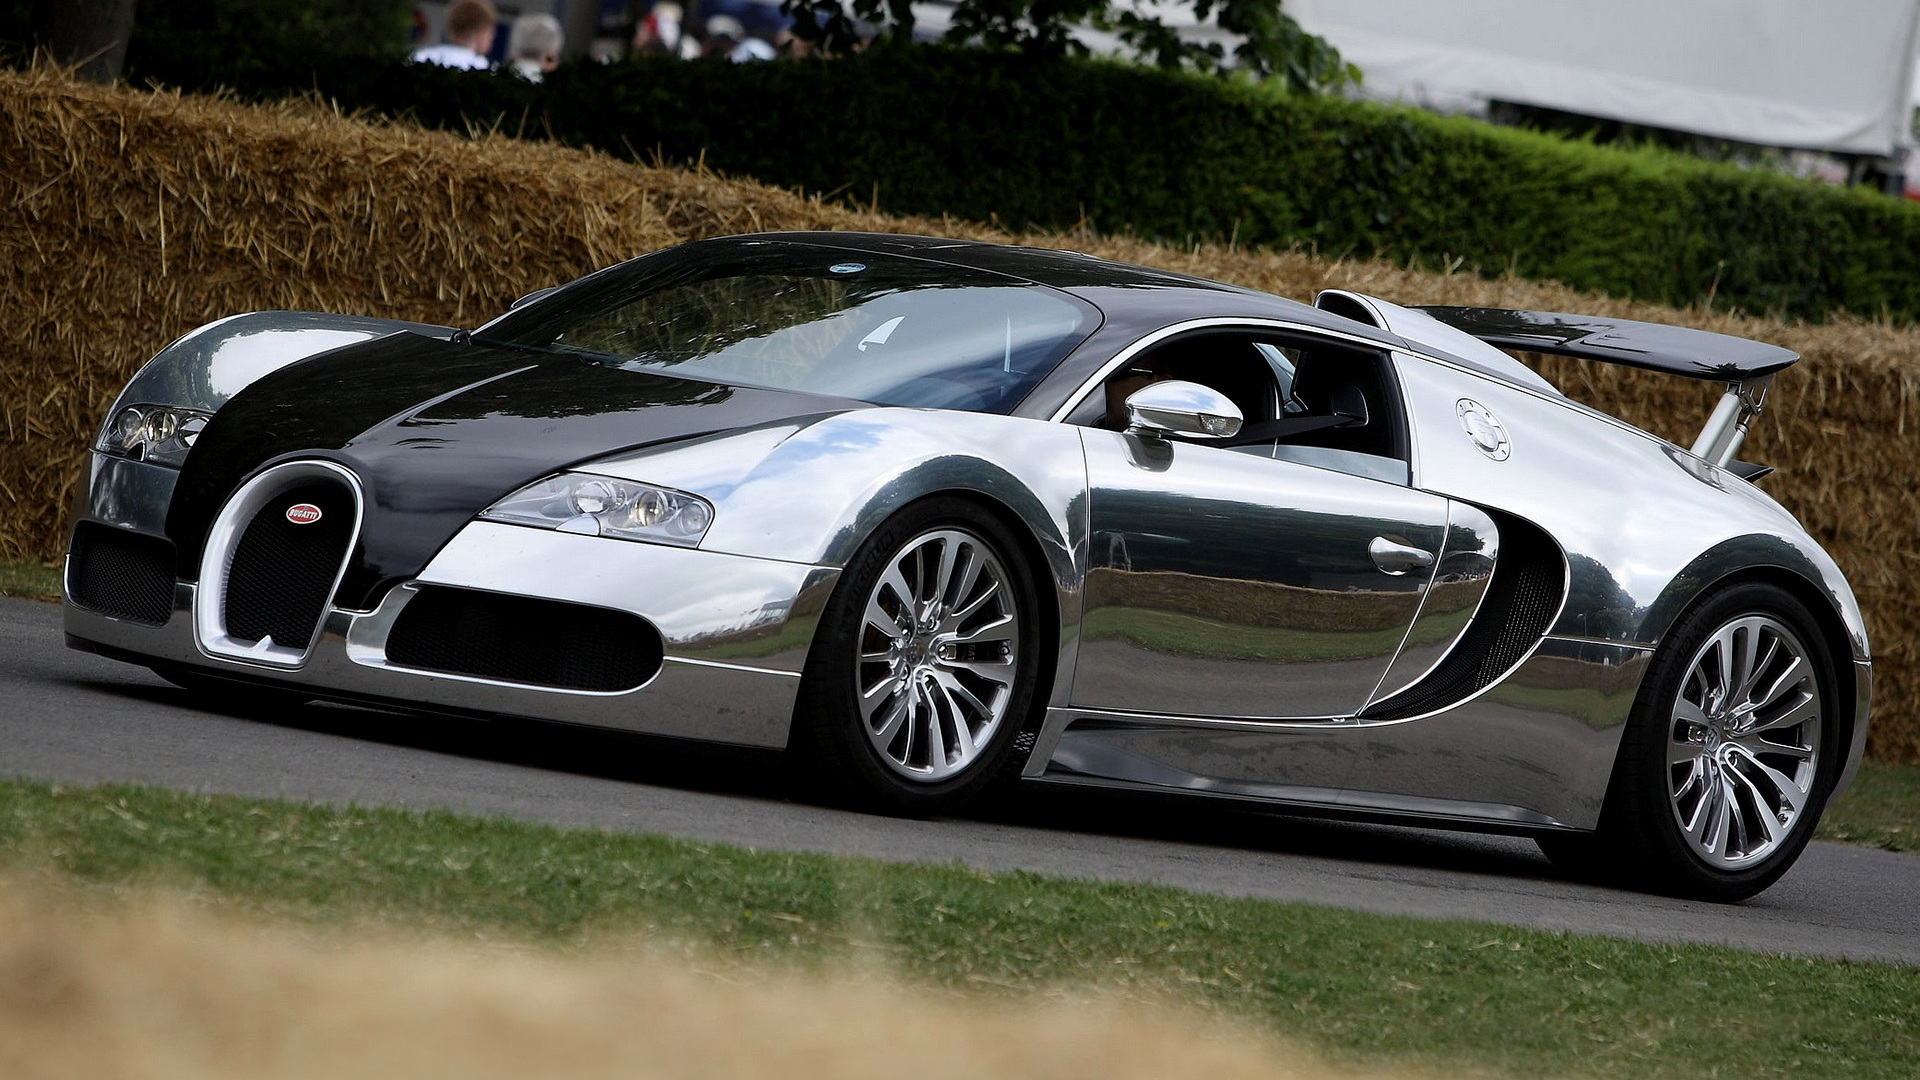 2007 Bugatti Veyron Pur Sang Wallpapers And Hd Images